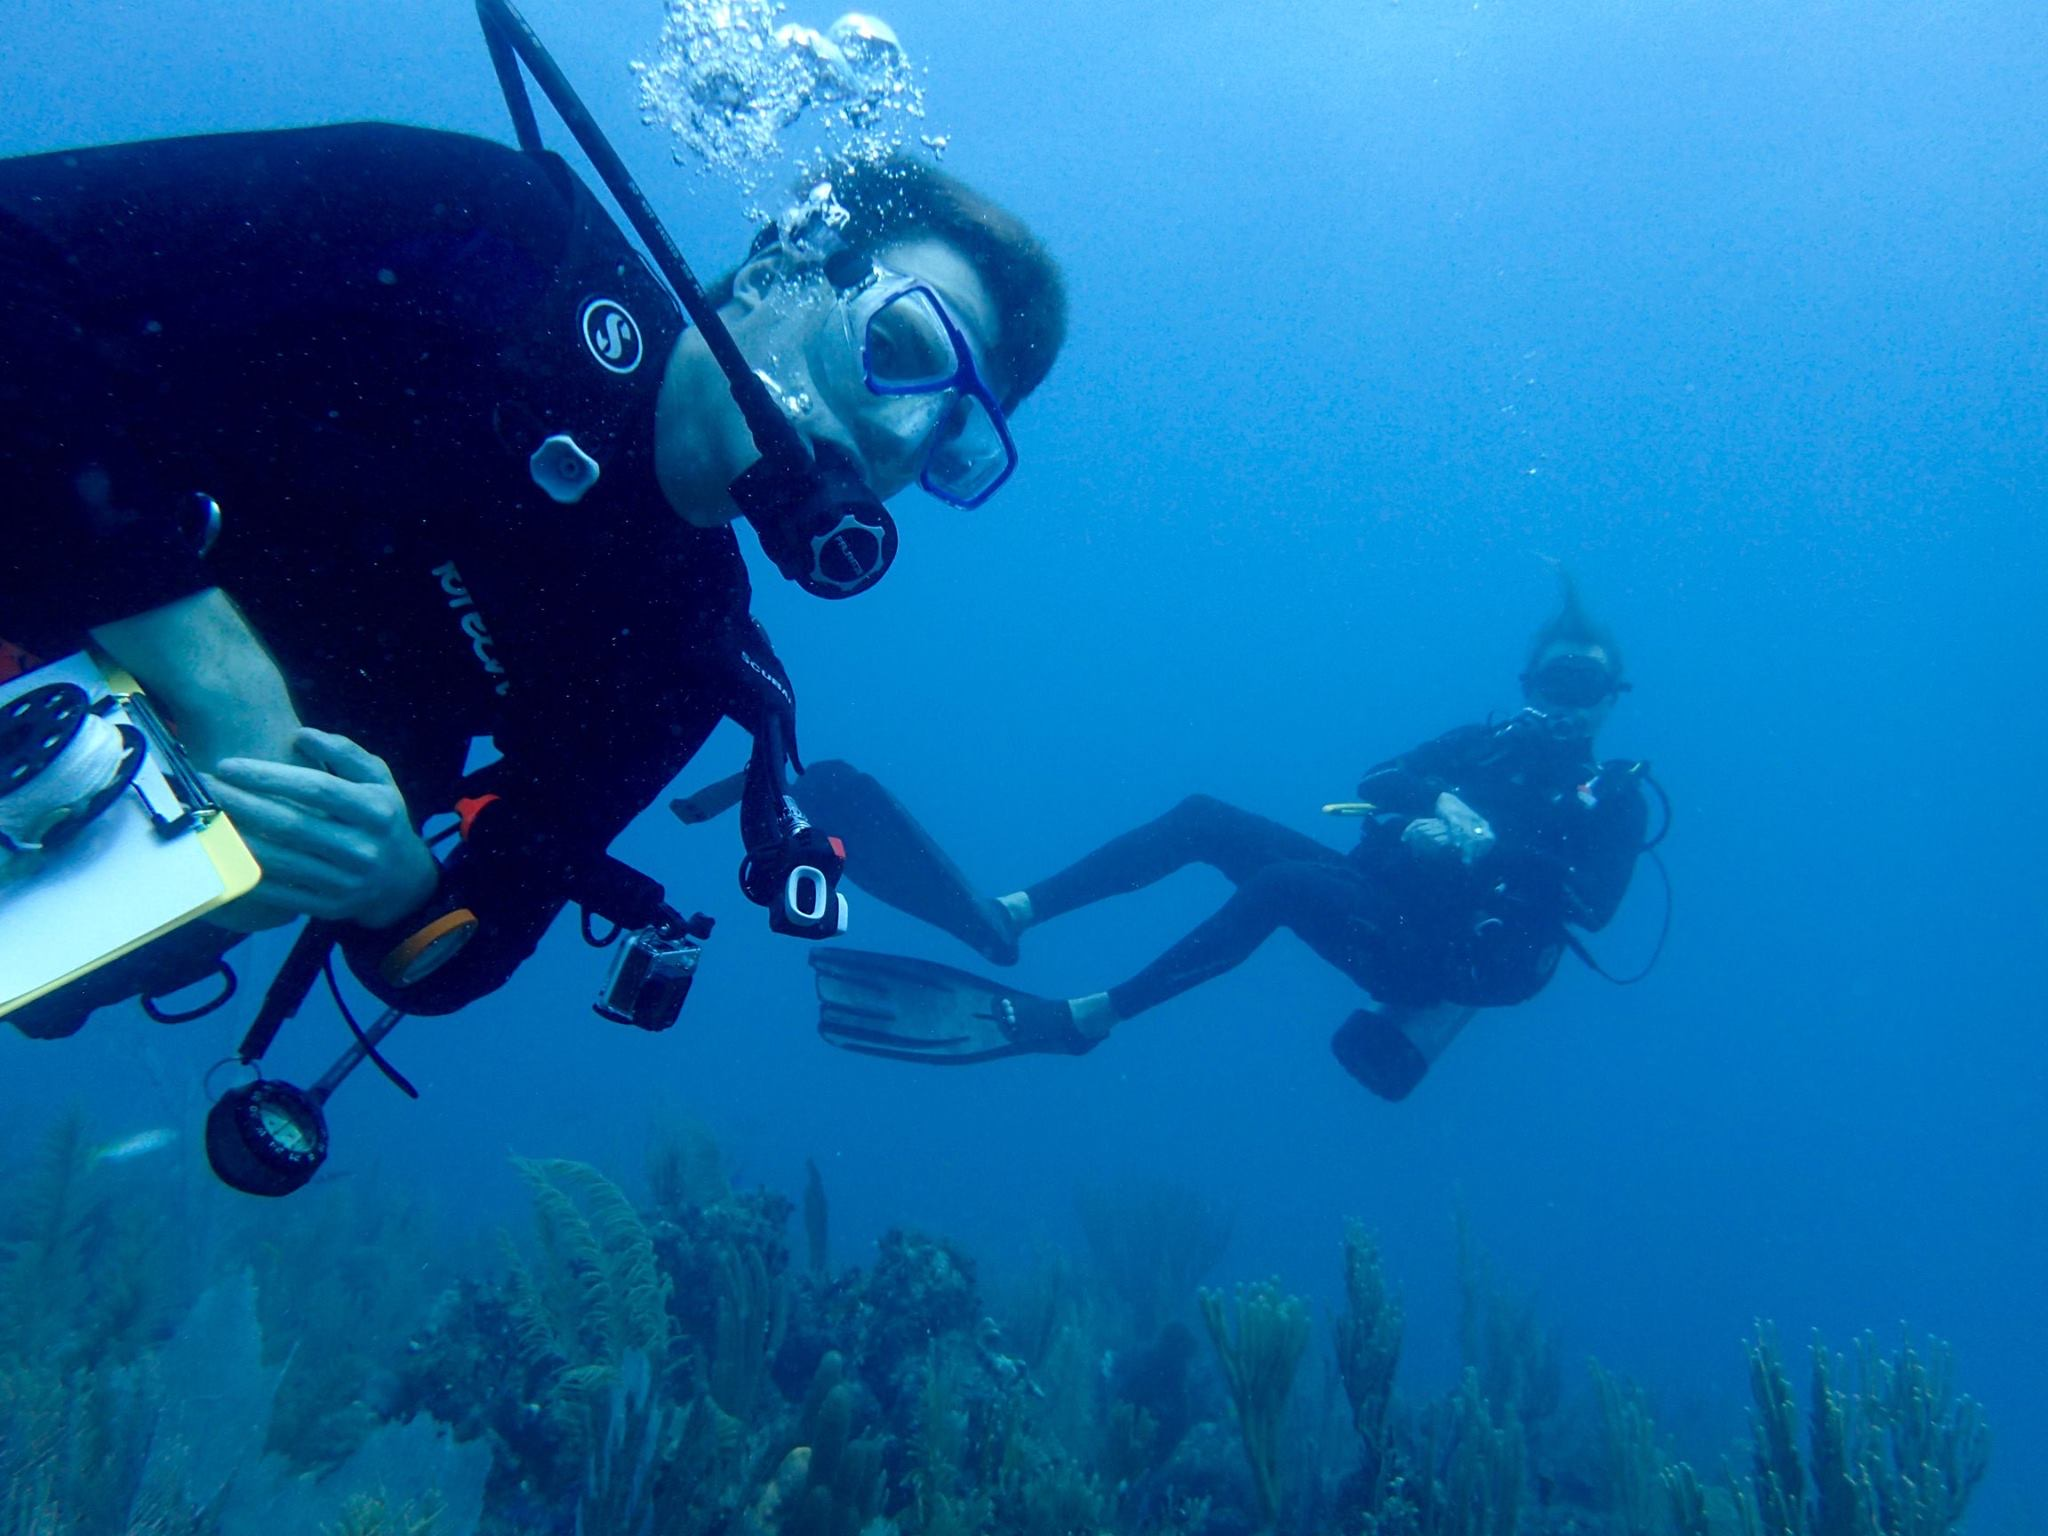 MIT-WHOI Joint Program student Tyler Tamasi dives in the Gardens of the Queen. (Photo: courtesy of Tyler Tamasi)